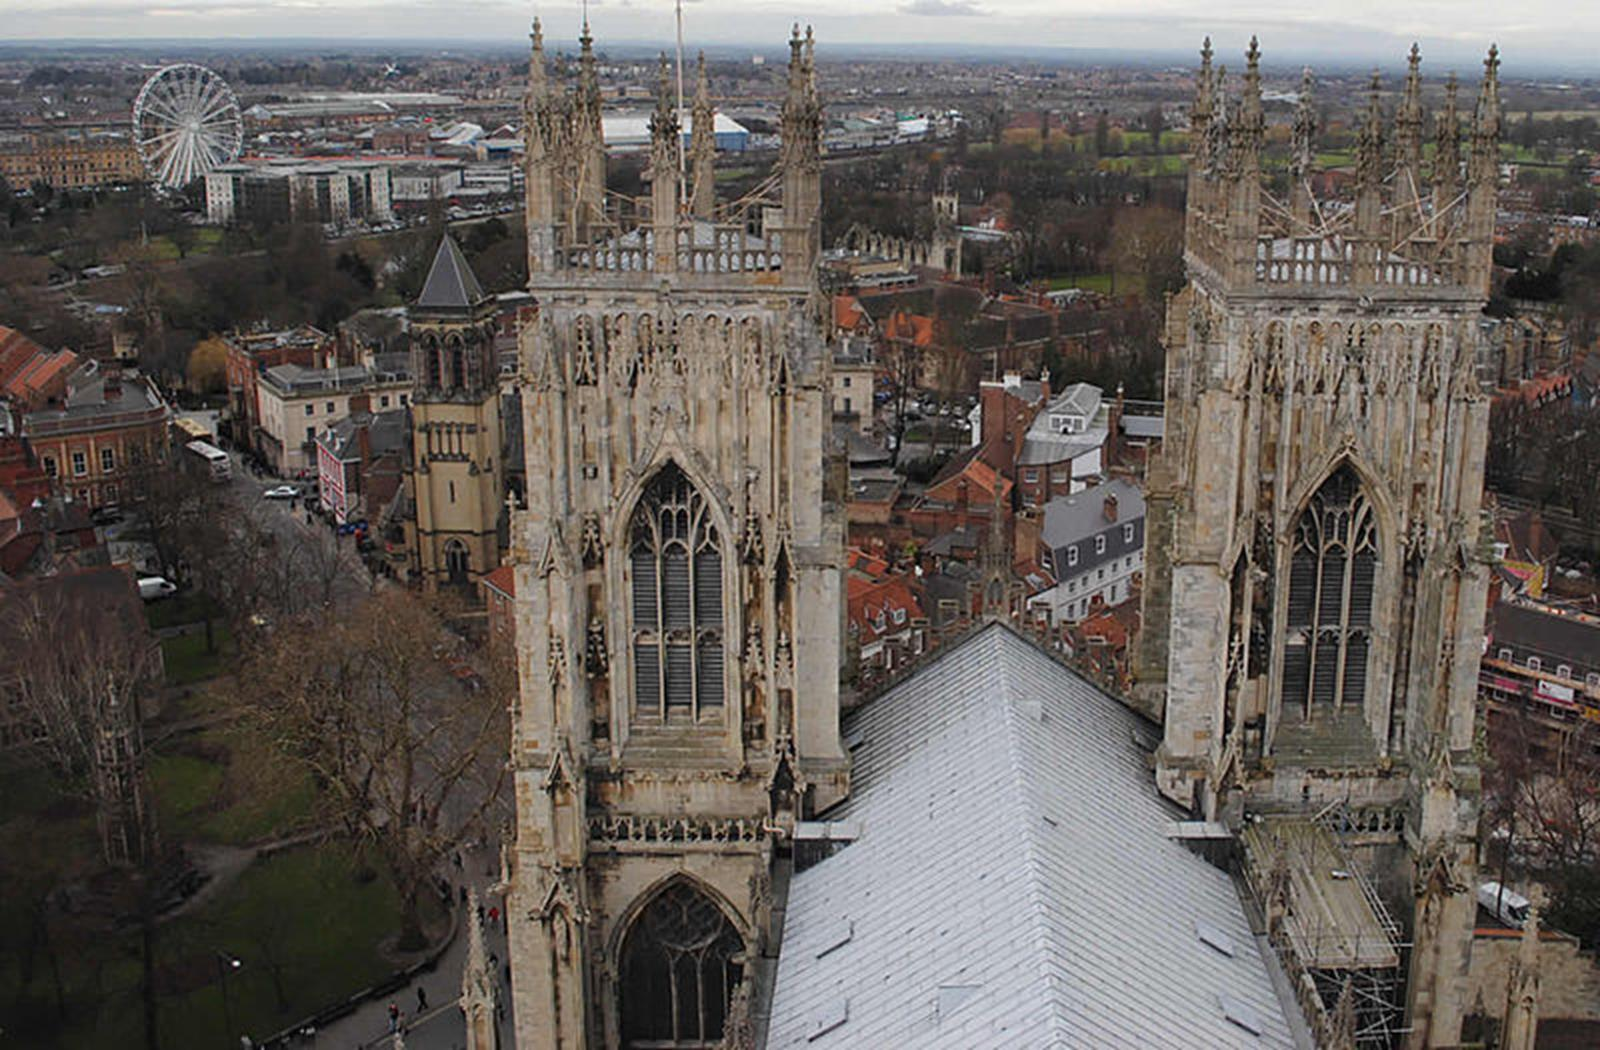 View of York from York Minster. Credit